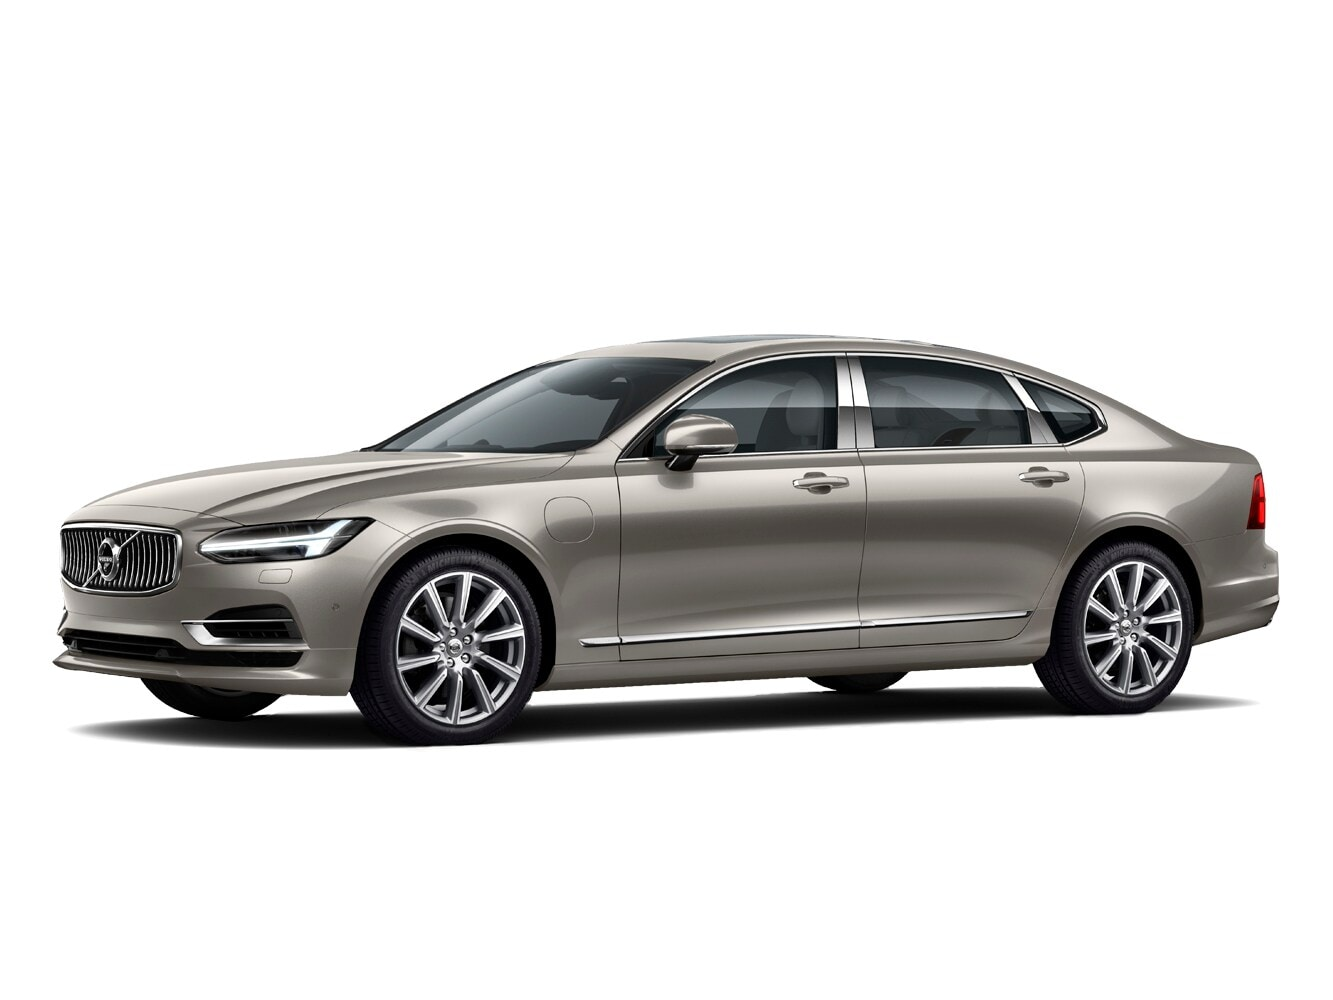 The Volvo S90 Excellence trim